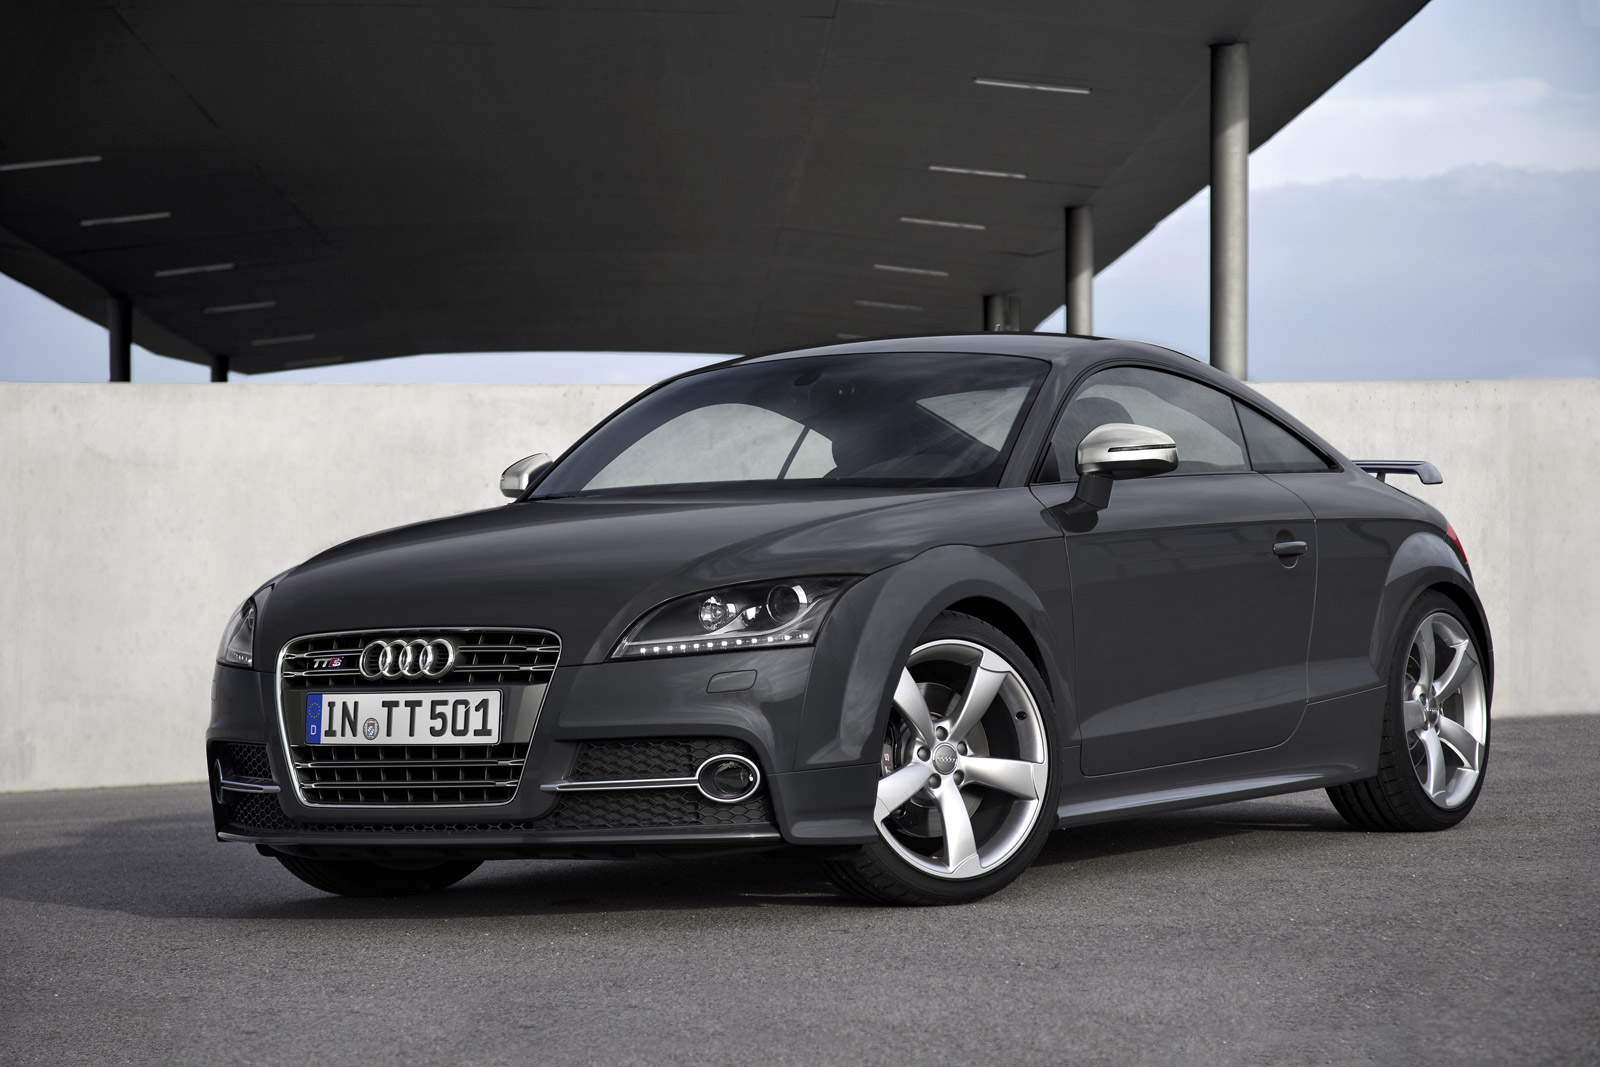 new and used audi tt prices photos reviews specs the car connection. Black Bedroom Furniture Sets. Home Design Ideas